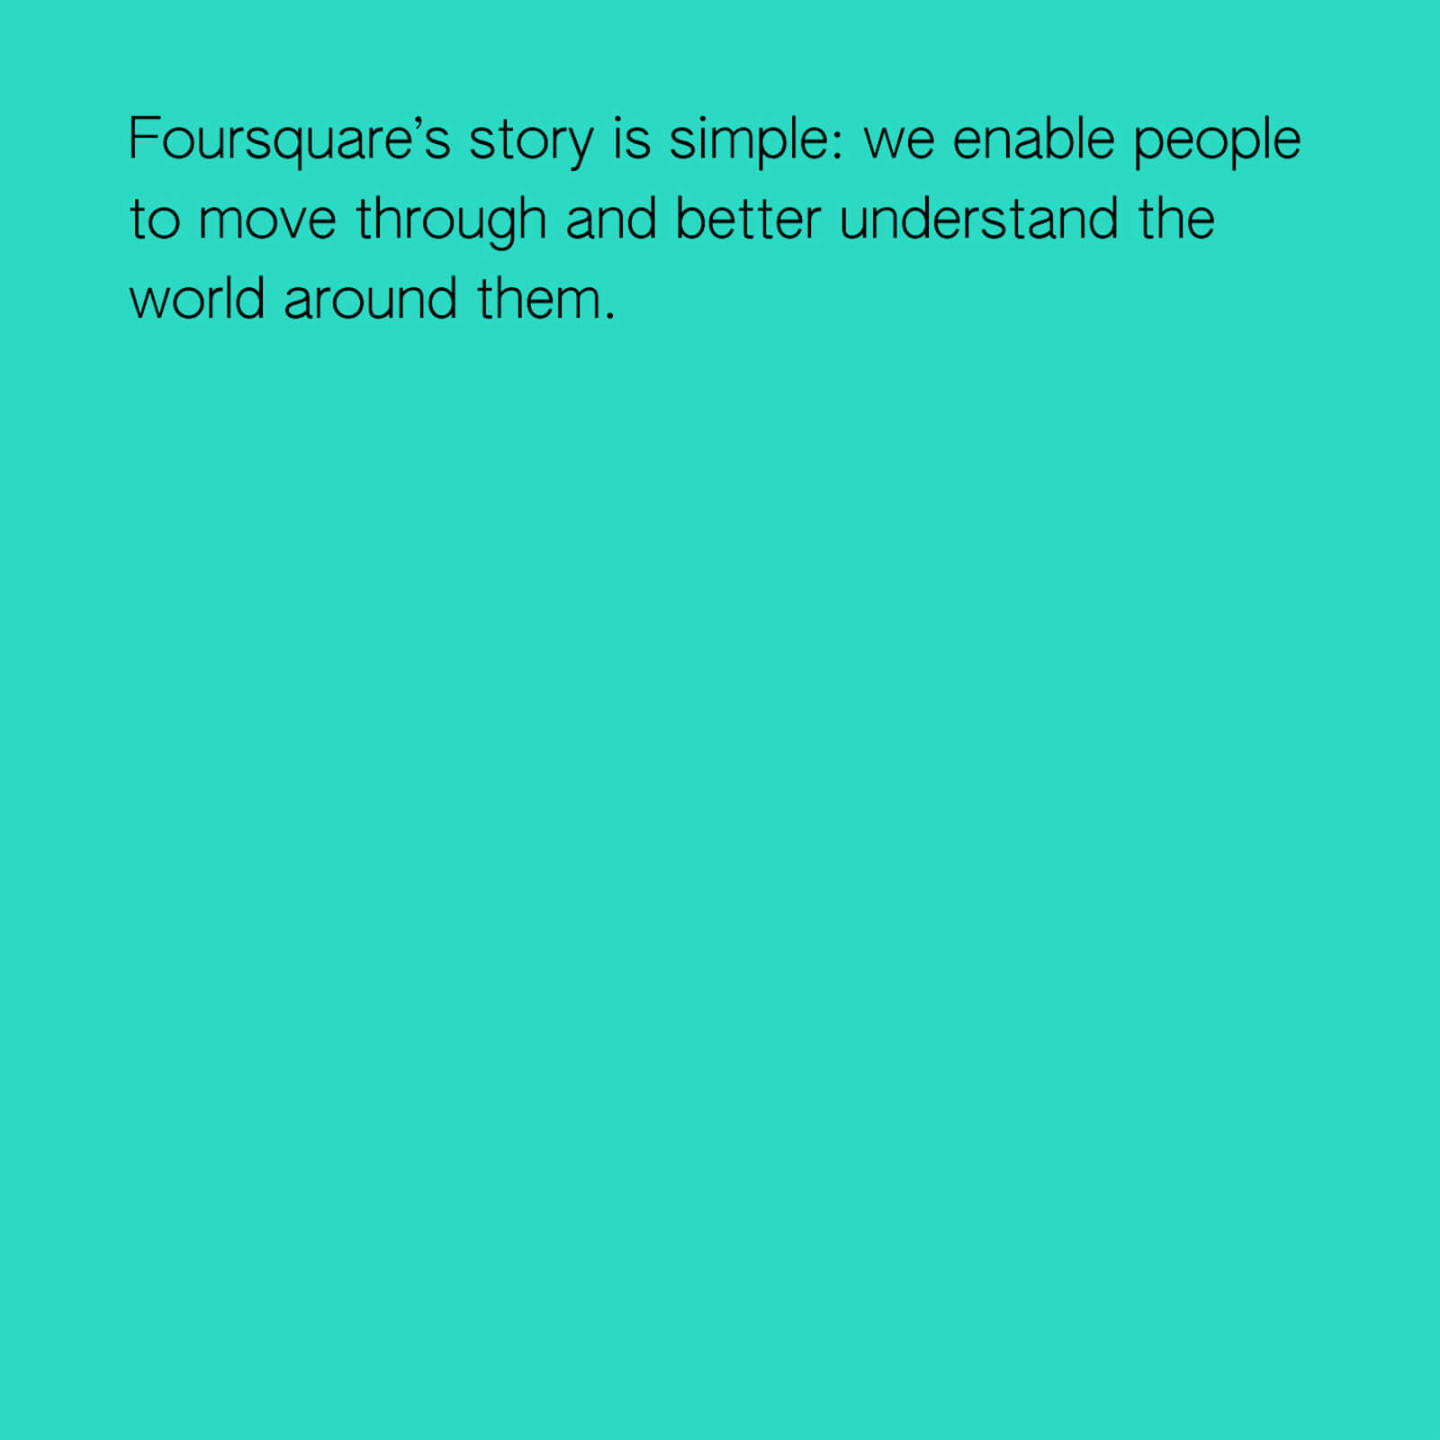 an image of text on a teal background which reads: Foursquare's story is simple: we enable people to move through and better understand the world around them.